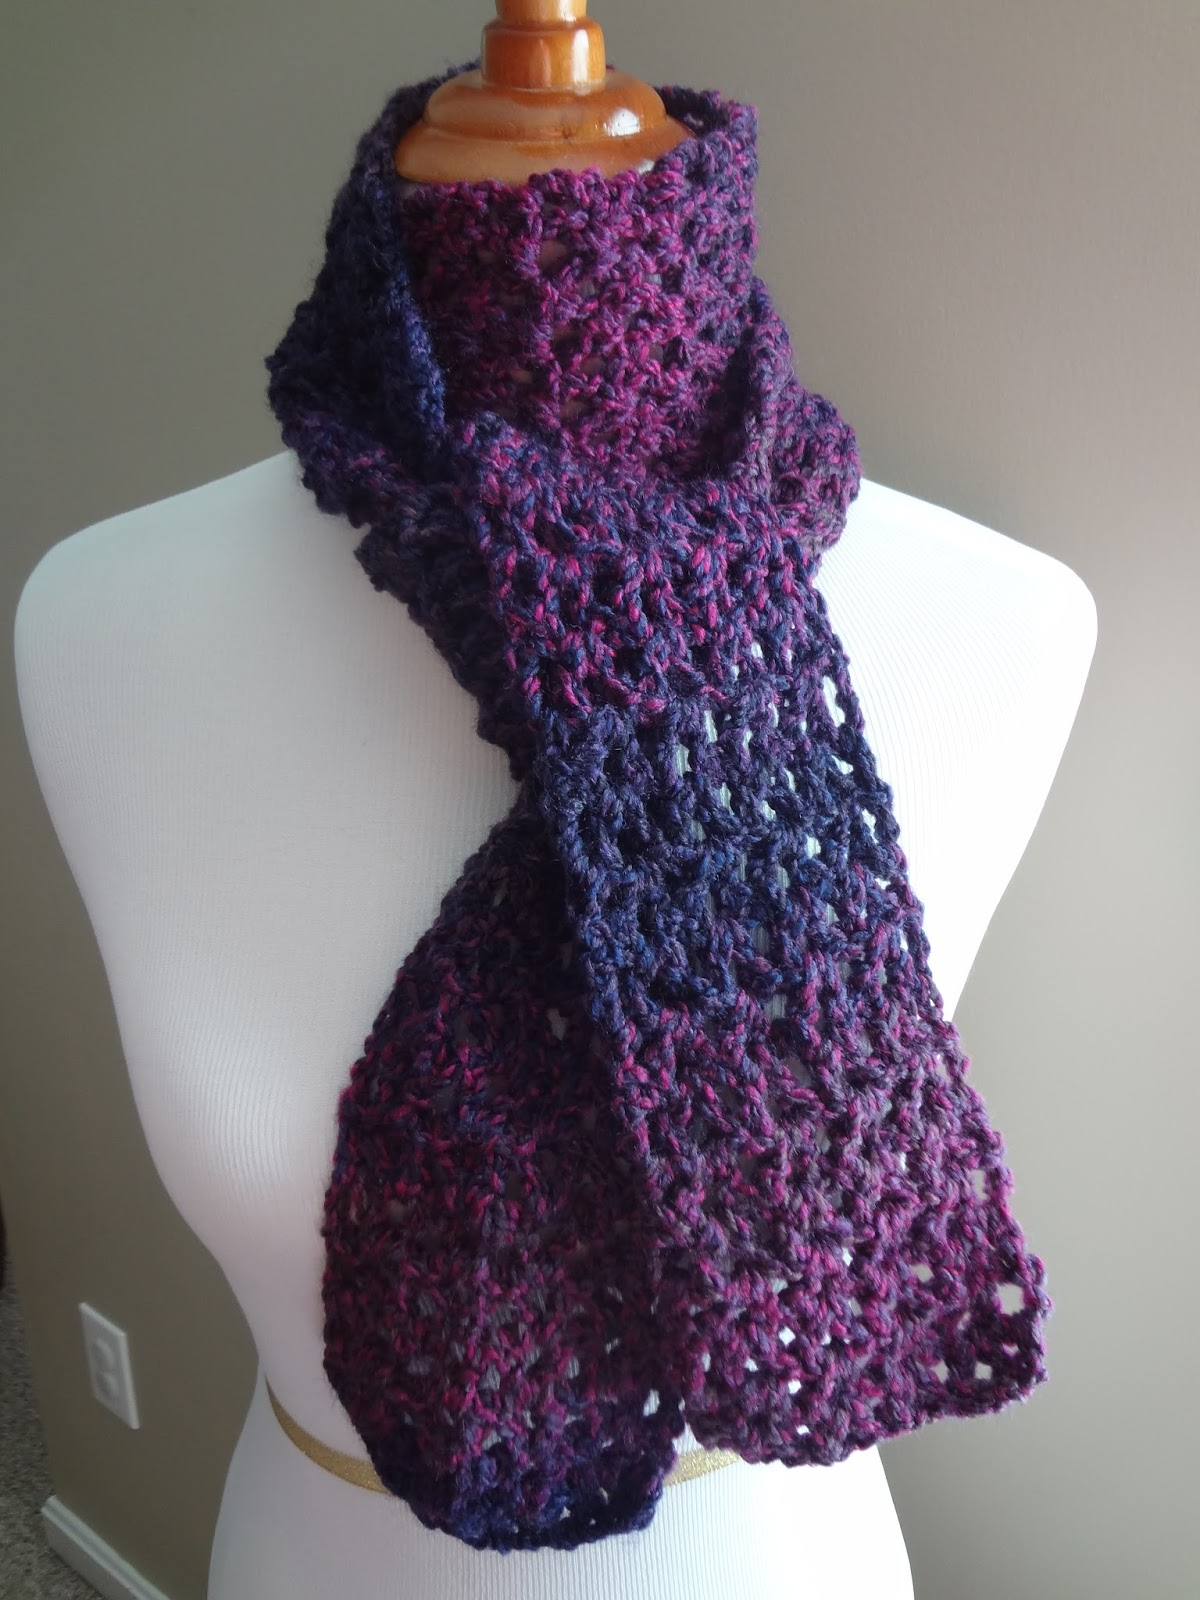 Crochet PatternBlueberry Pie Scarf Crochet Childrens Scarf Patterns Crochet Children's Scarf Patterns